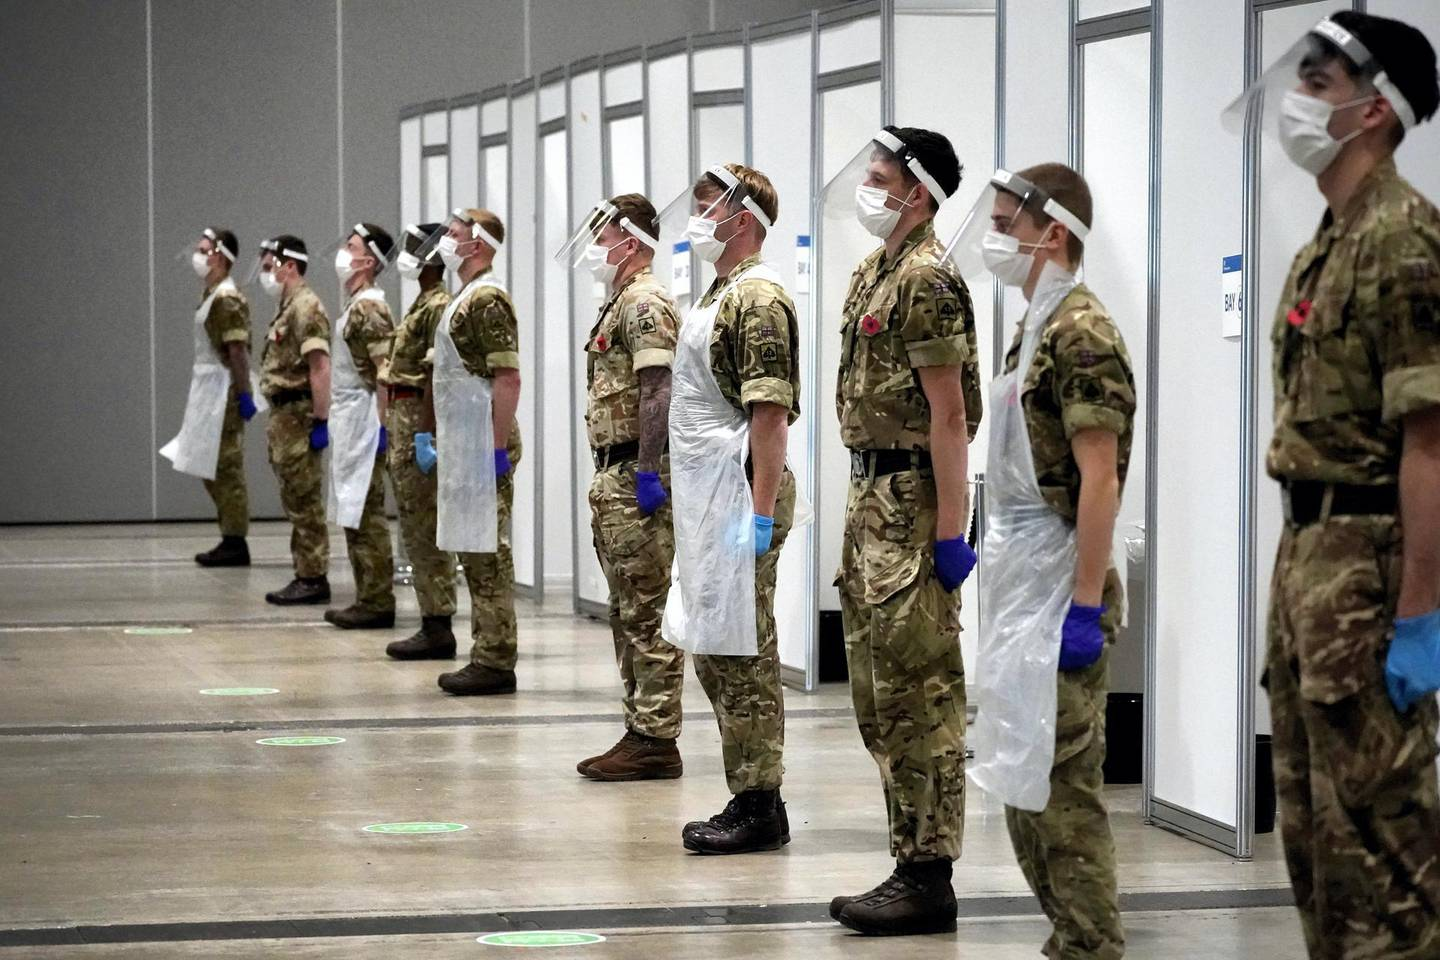 LIVERPOOL, ENGLAND - NOVEMBER 11: Soldiers from the Yorkshire Regiment observe a 2 minute silence to mark Remembrance Day at Liverpool Exhibition Centre, where the UK military are assisting with mass COVID-19 testing on November 11, 2020 in Liverpool, United Kingdom. Wednesday marked 102 years since the armistice that marked the end of World War I. (Photo by Christopher Furlong/Getty Images)